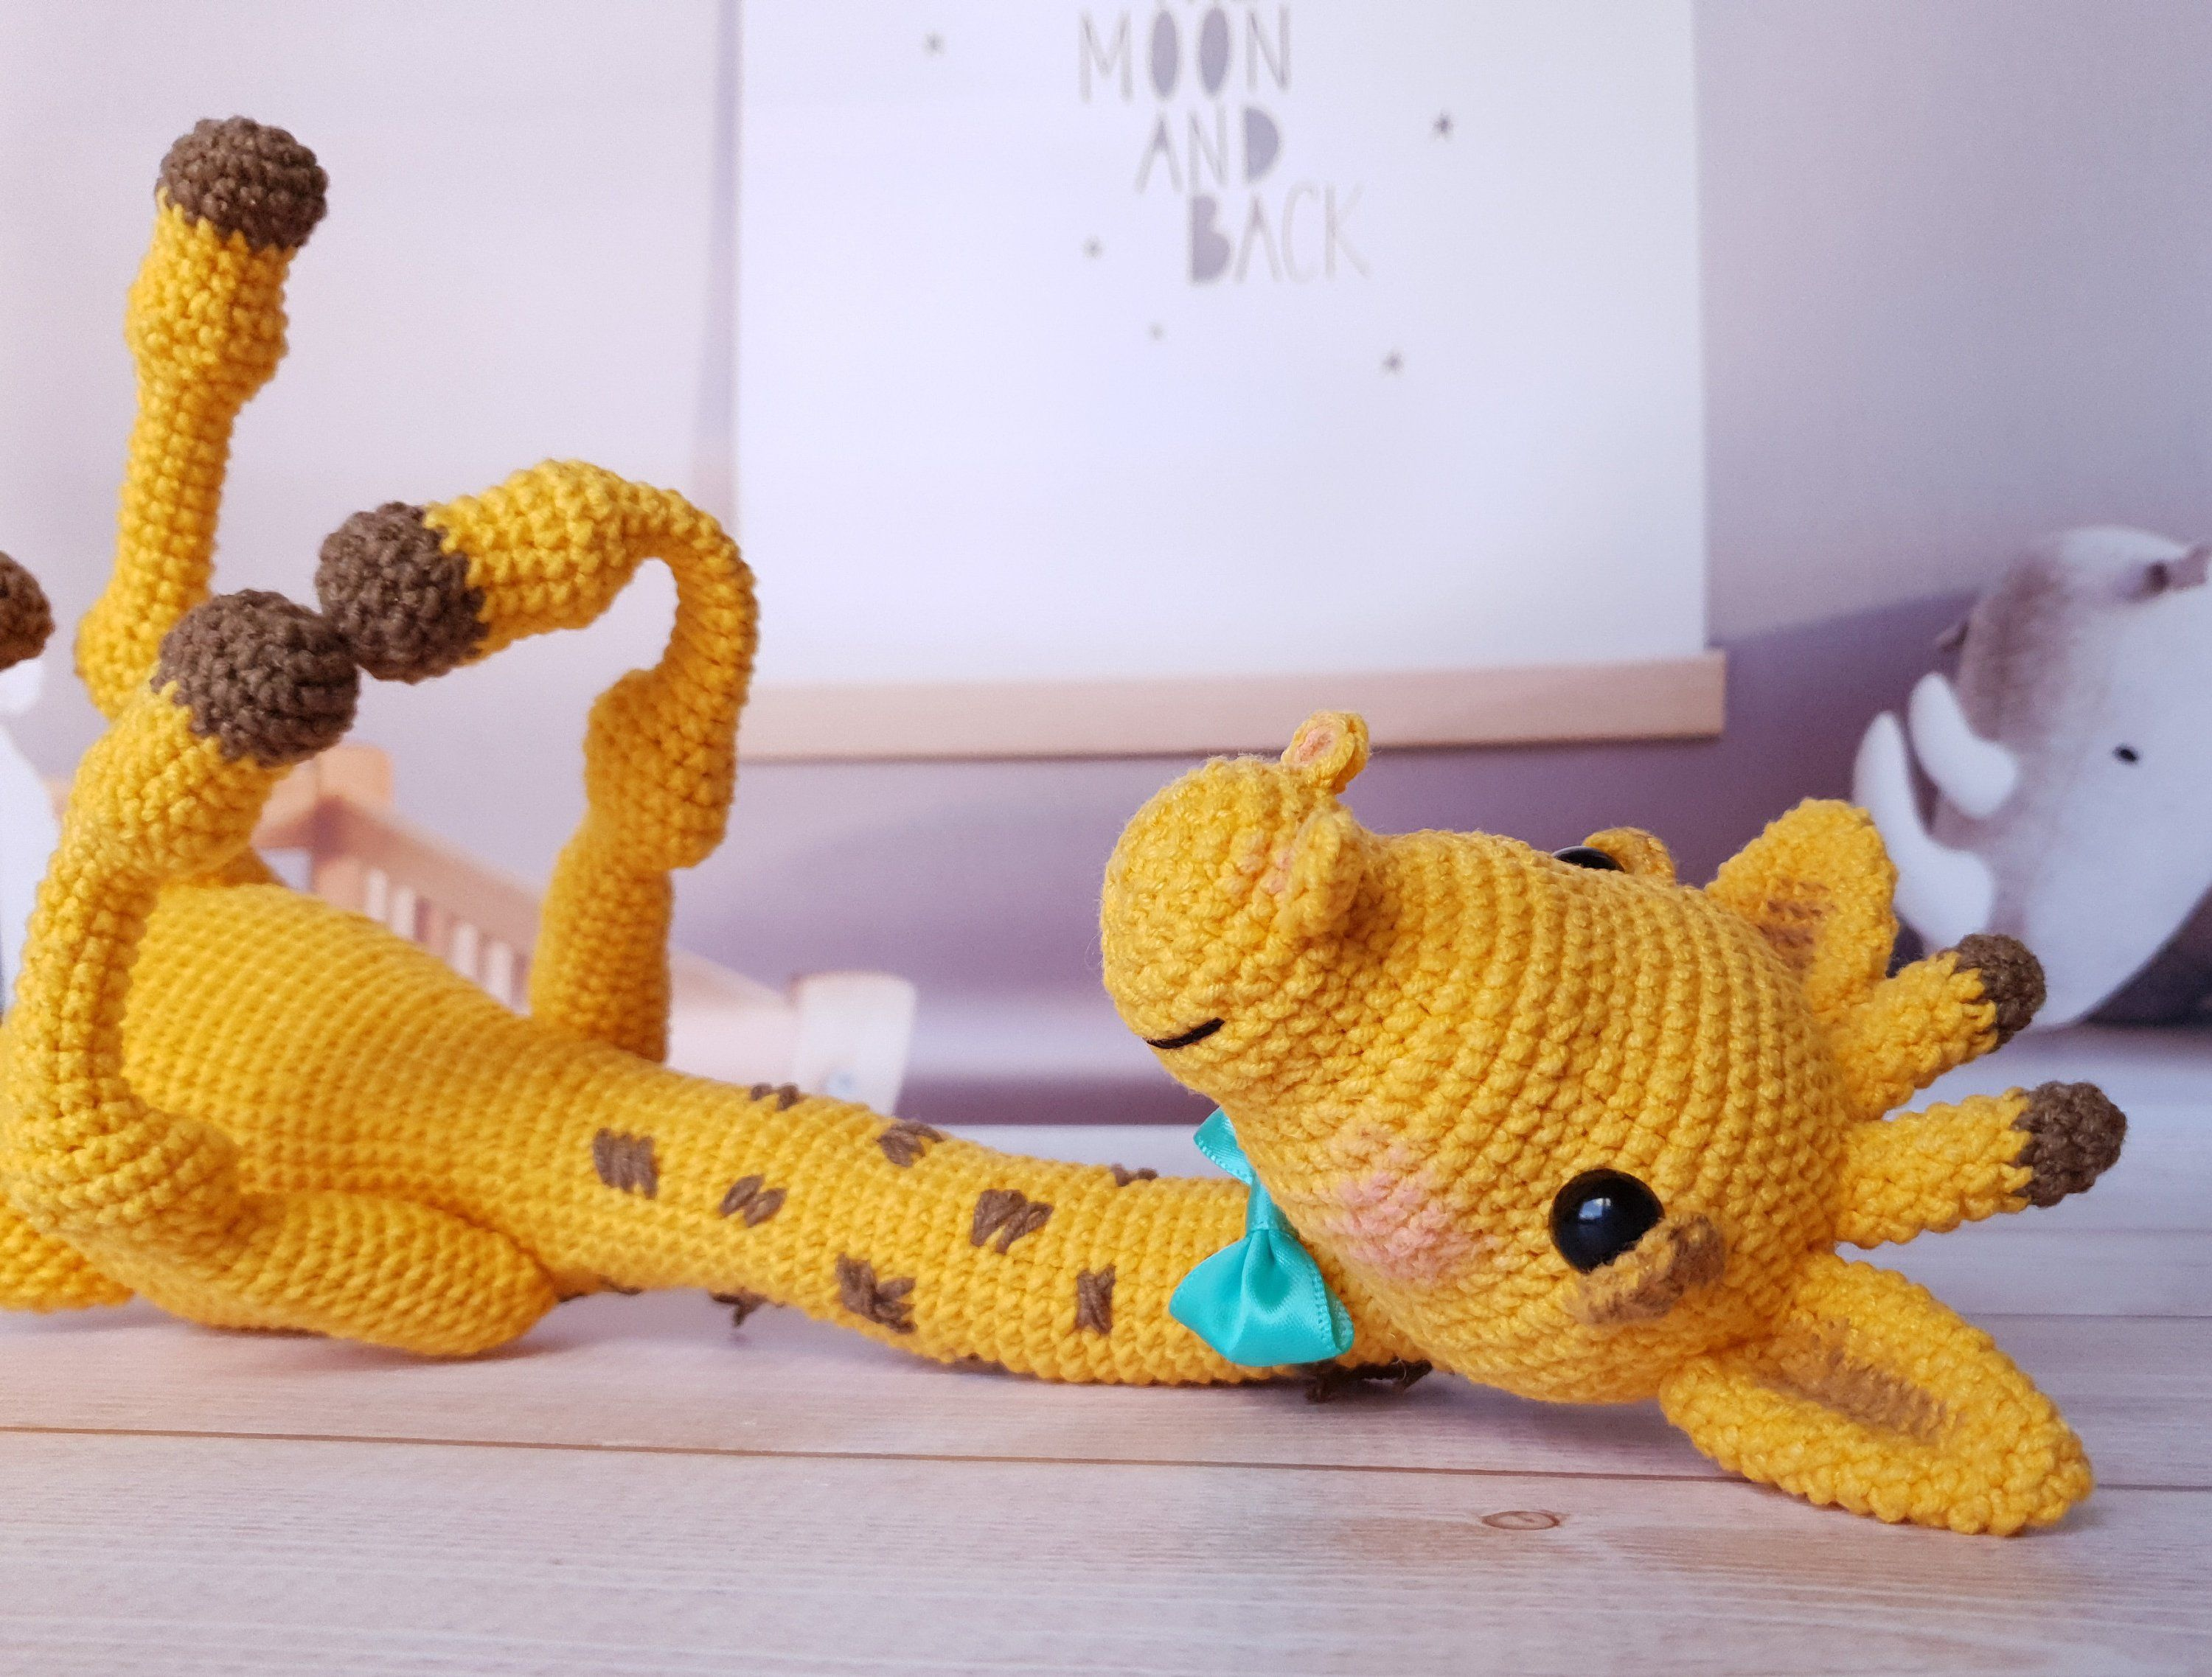 Stuffed giraffe for baby, first kids toy, gift idea for